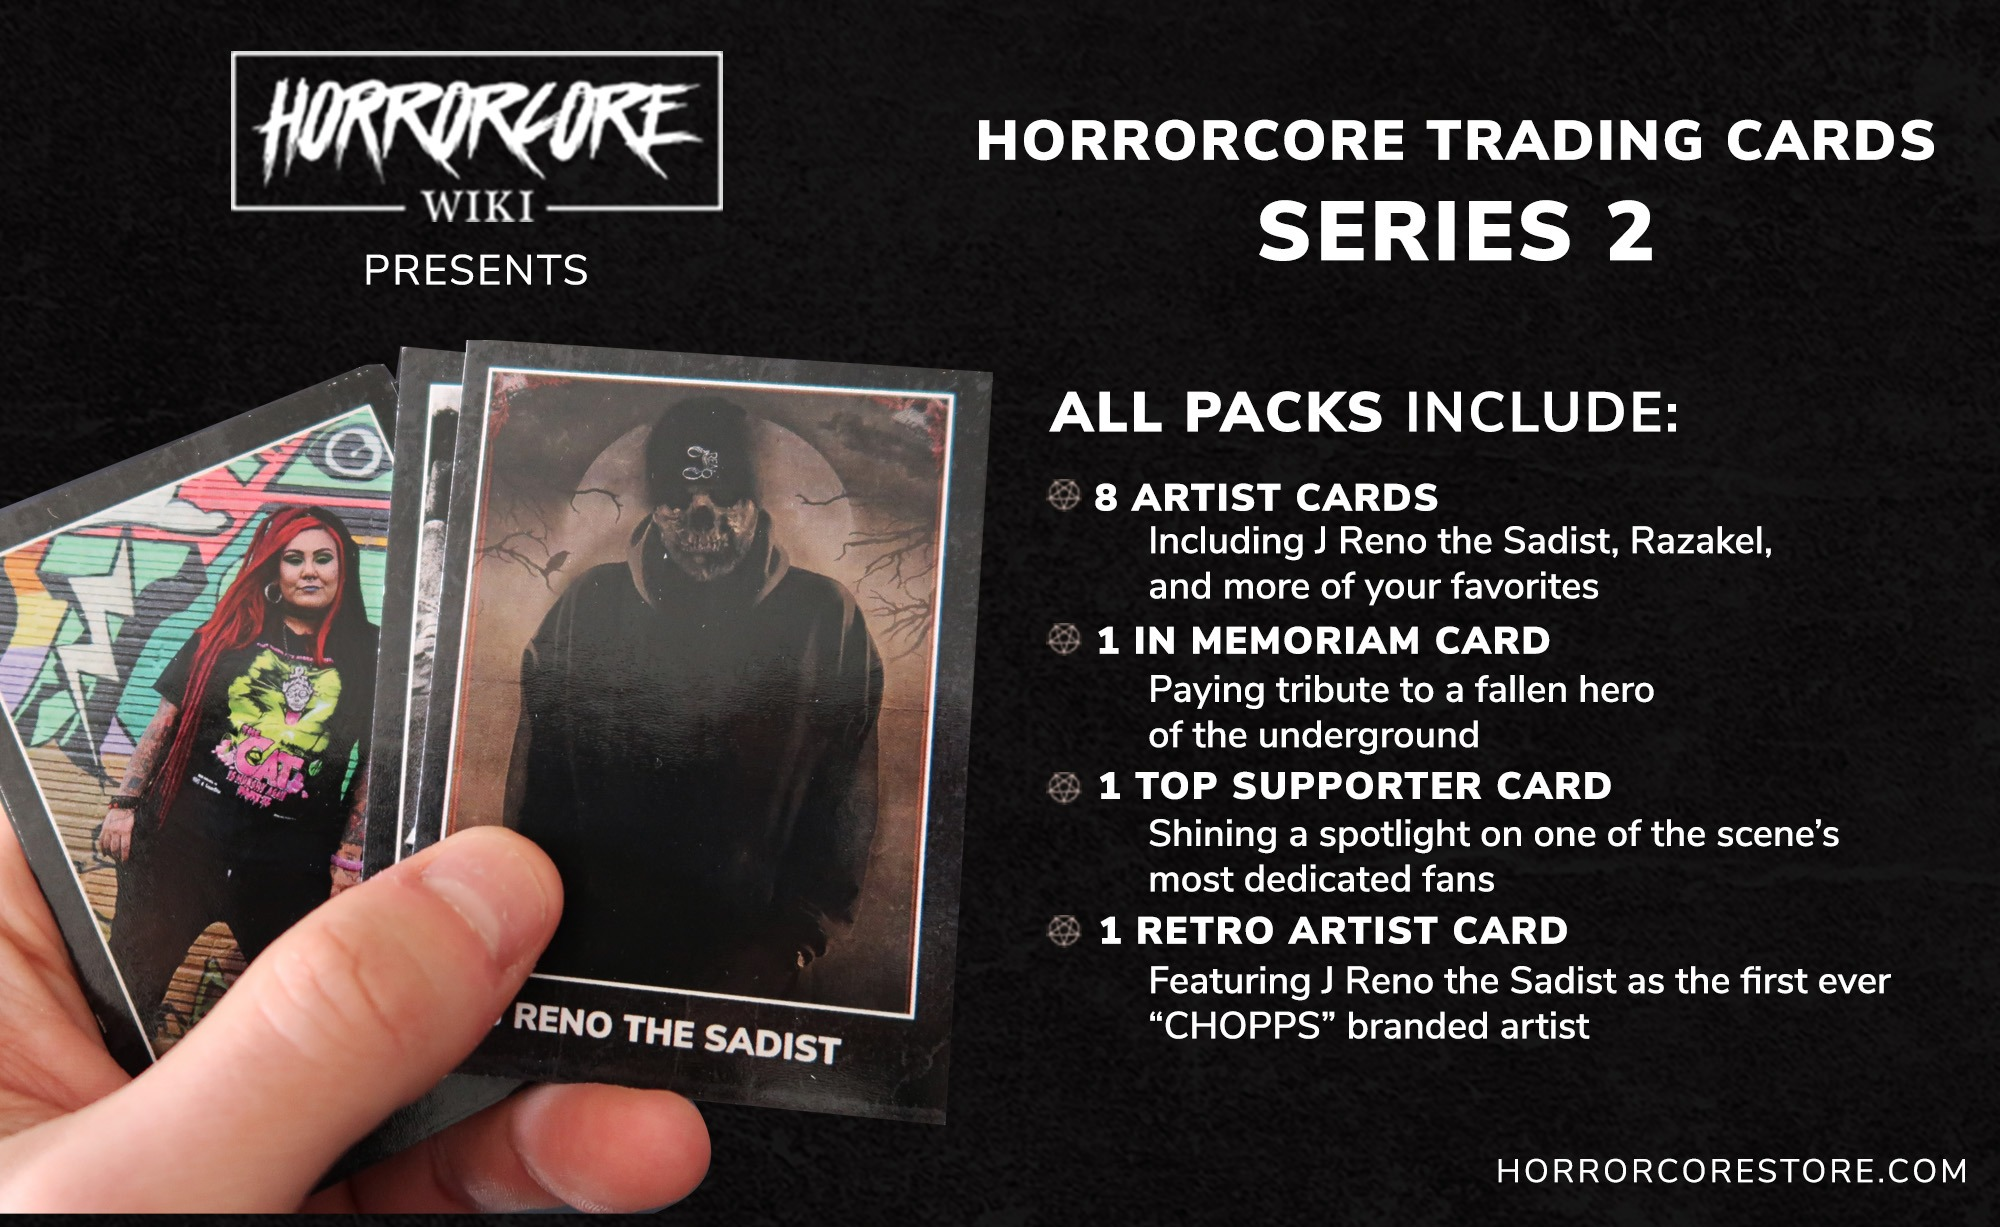 Horrorcore Trading Cards SERIES 2